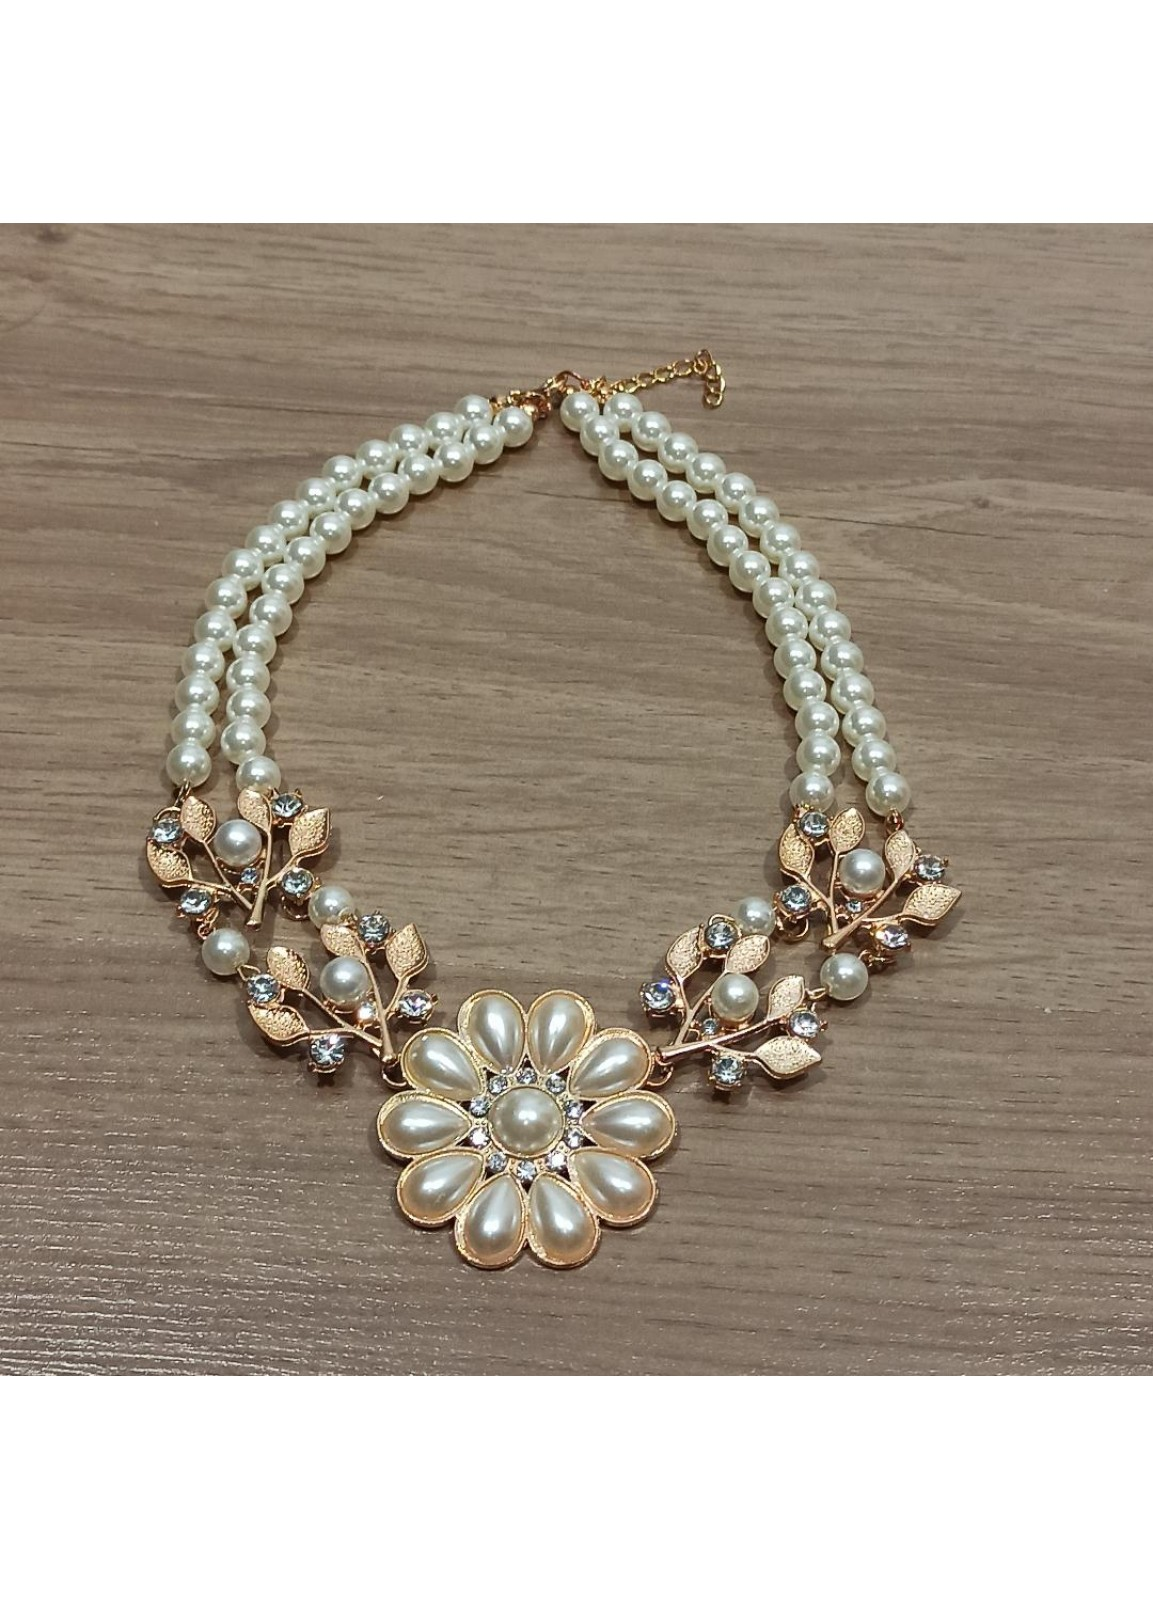 Vintage Flower Necklace Pearls